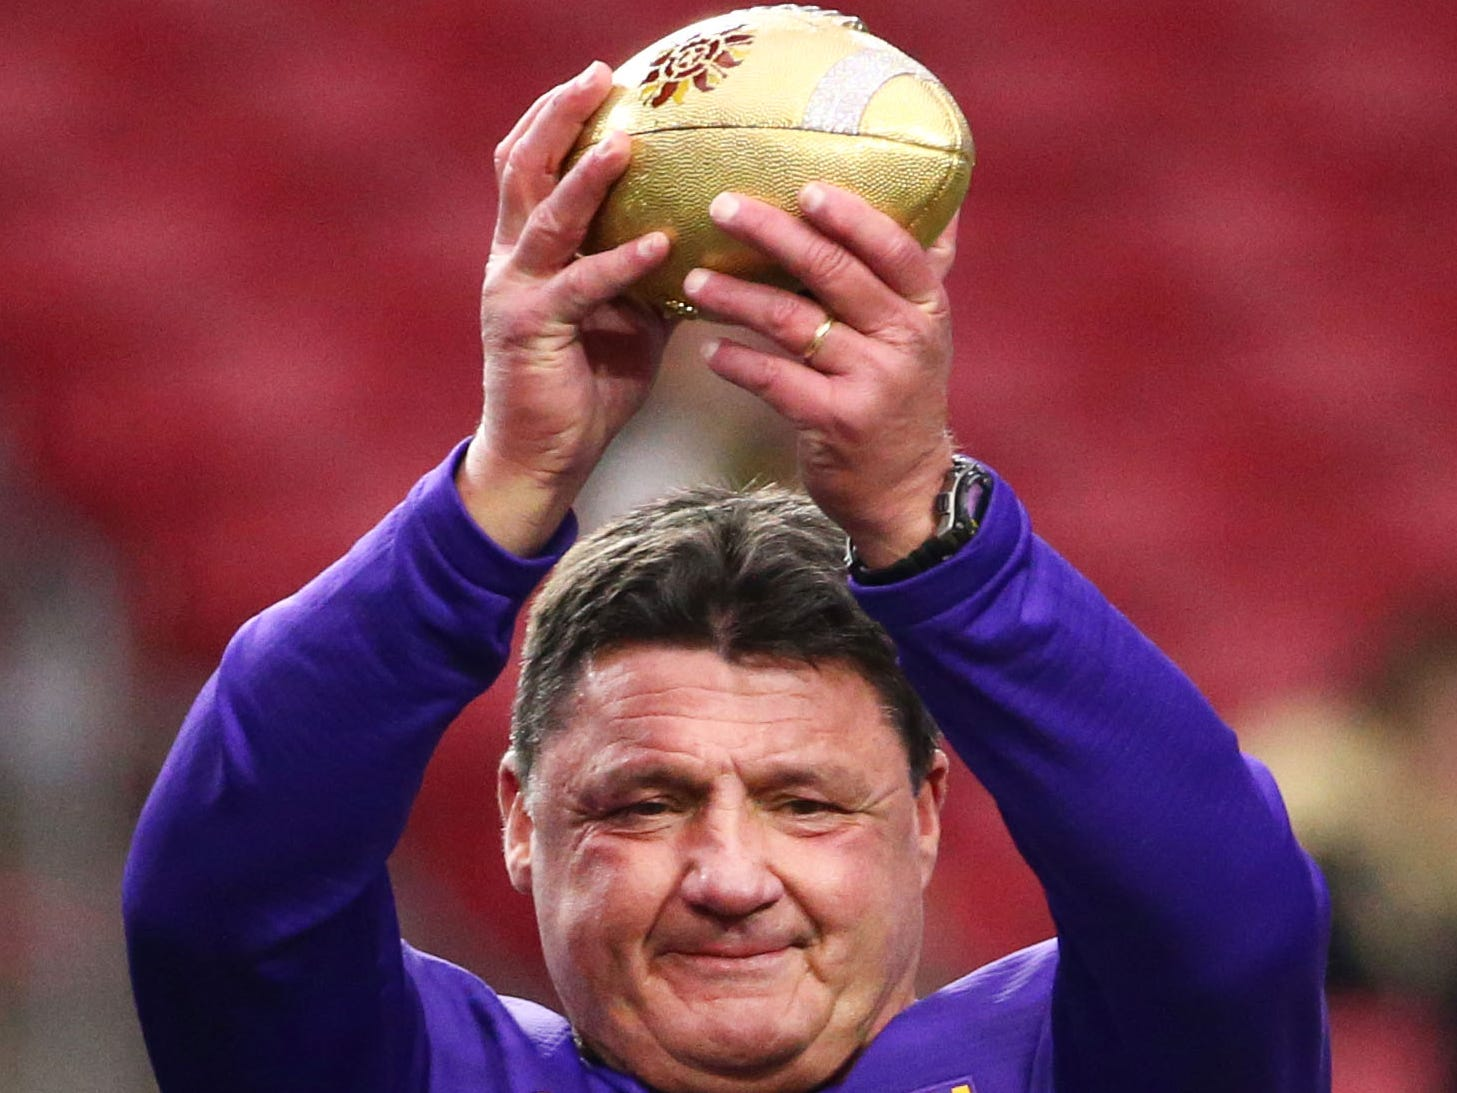 LSU Tigers head coach Ed Orgeron lifts the trophy after defeating the UCF Knights 40-32 at the Fiesta Bowl on Jan. 1 at State Farm Stadium.